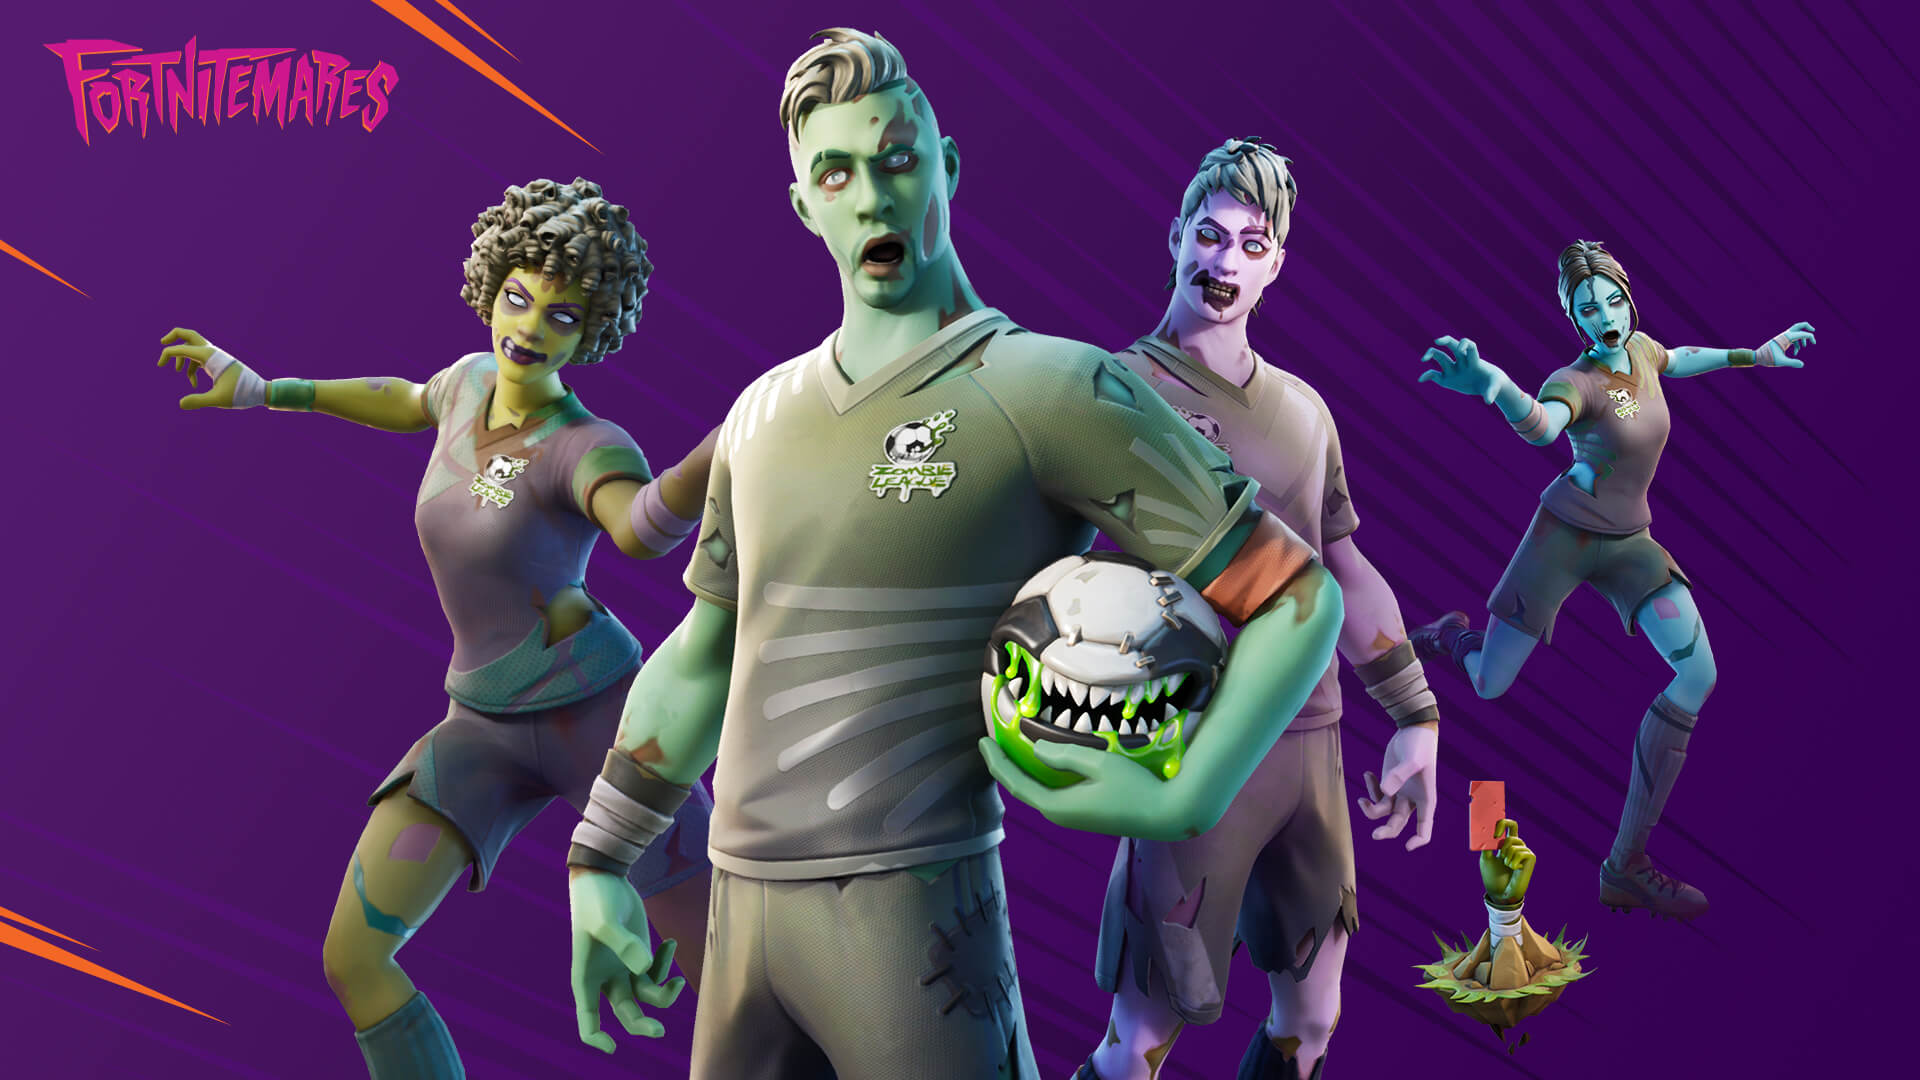 The first Halloween Fortnite leak is here and it hints that 1920x1080